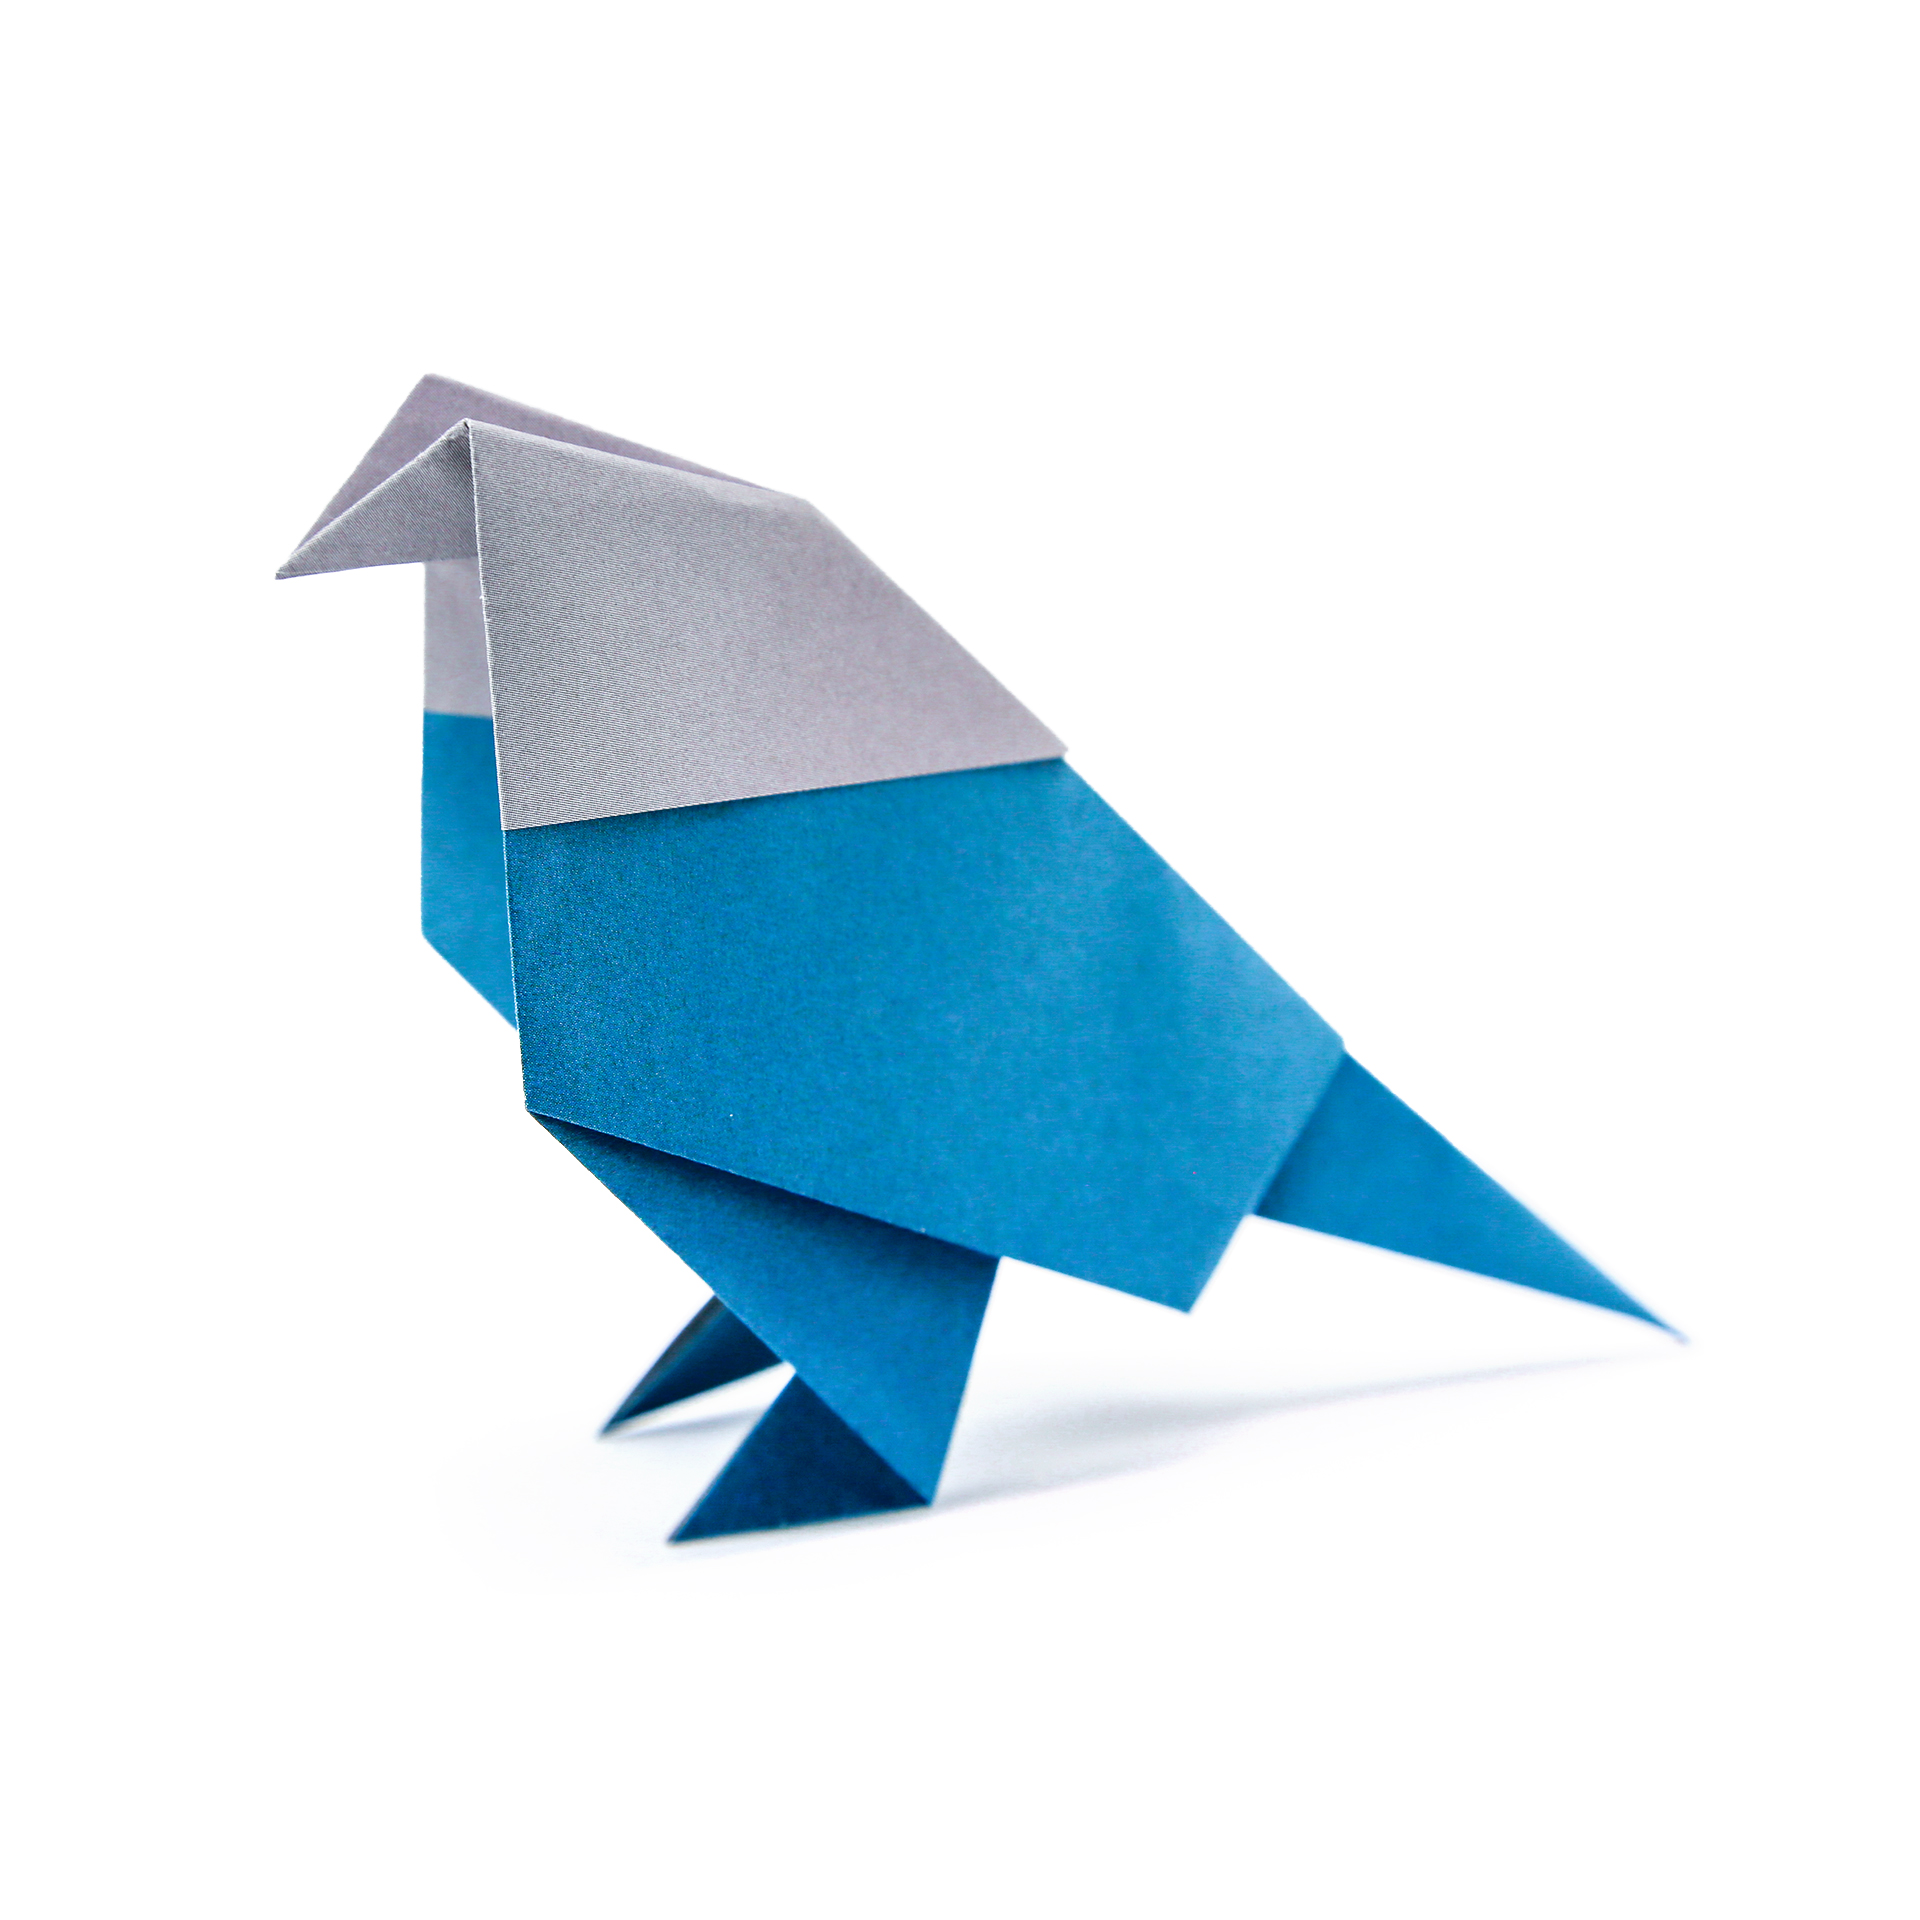 Origami peace dove - YouTube | 1920x1920